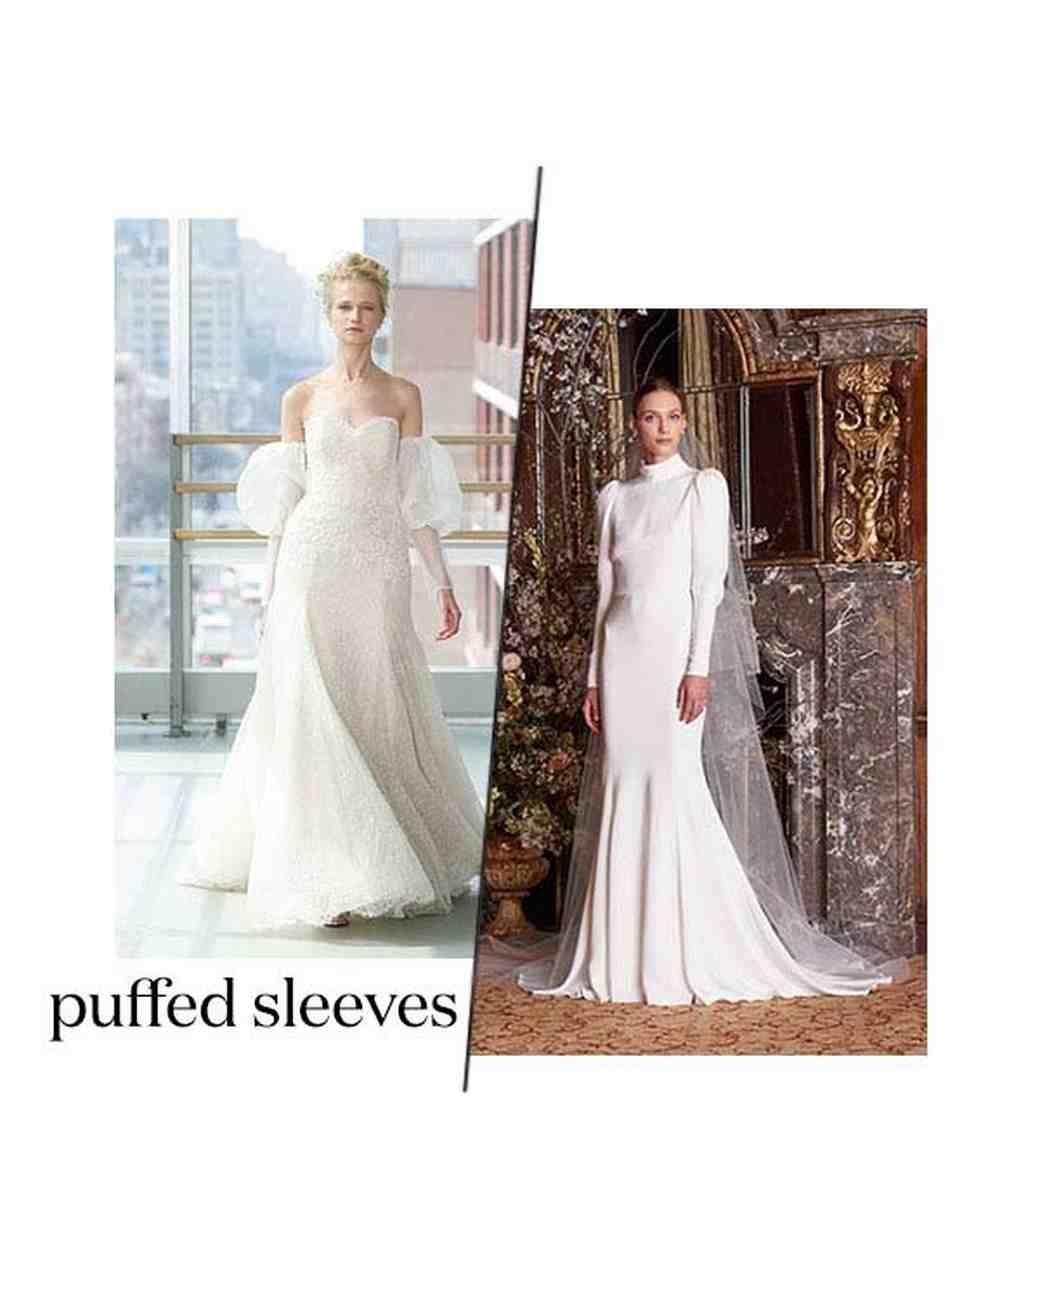 Spring 2019 Bridal Fashion Week Puffed Sleeves Trend